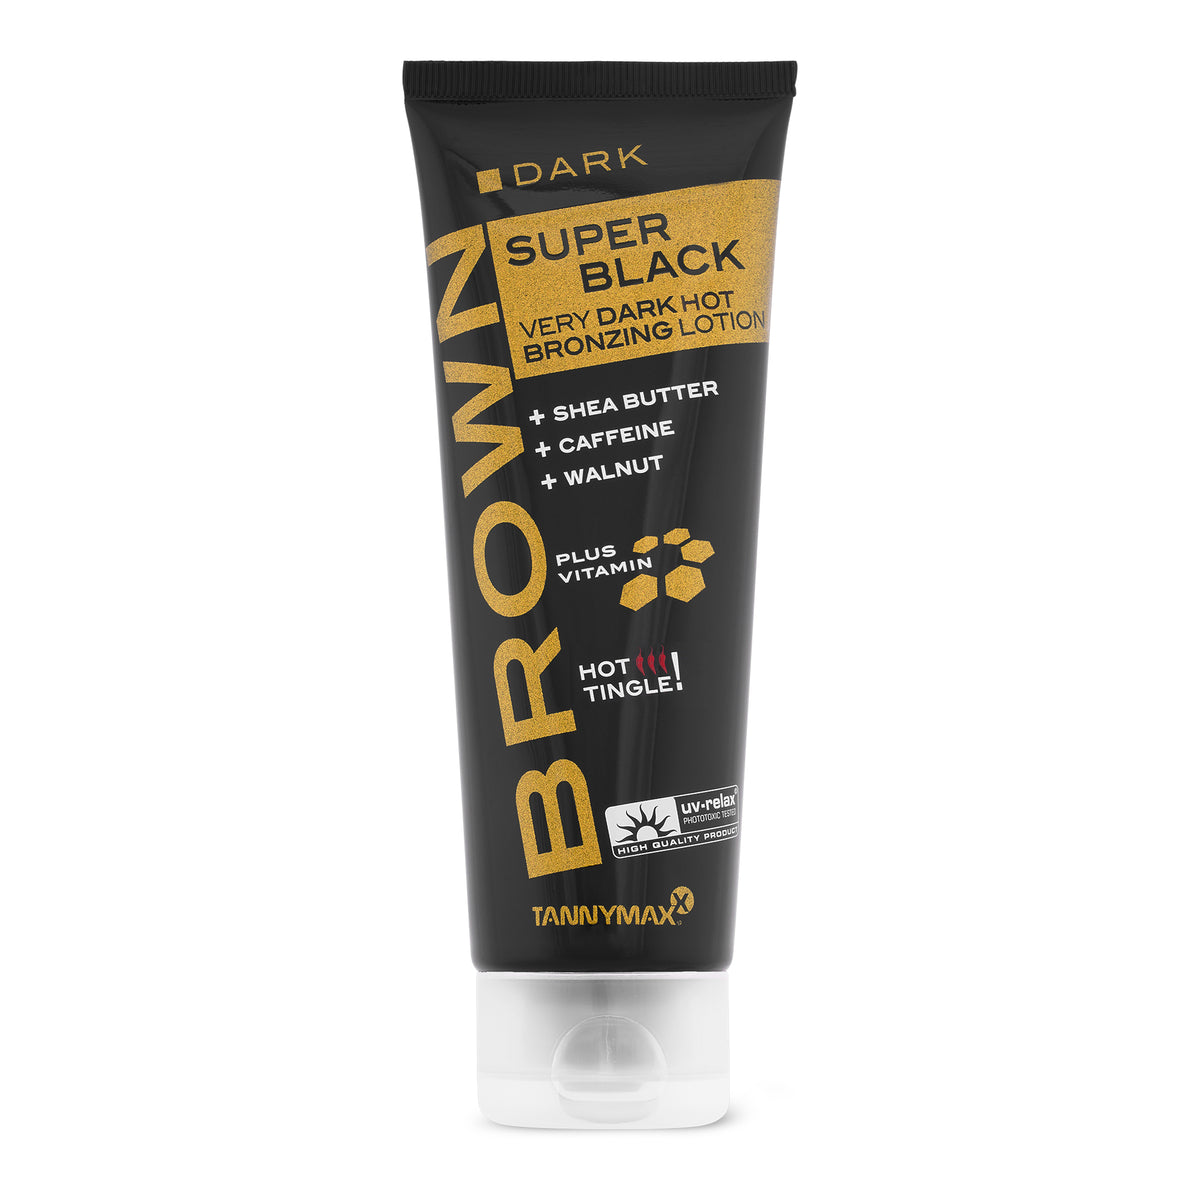 Super Black Very Dark HOT Bronzing Lotion